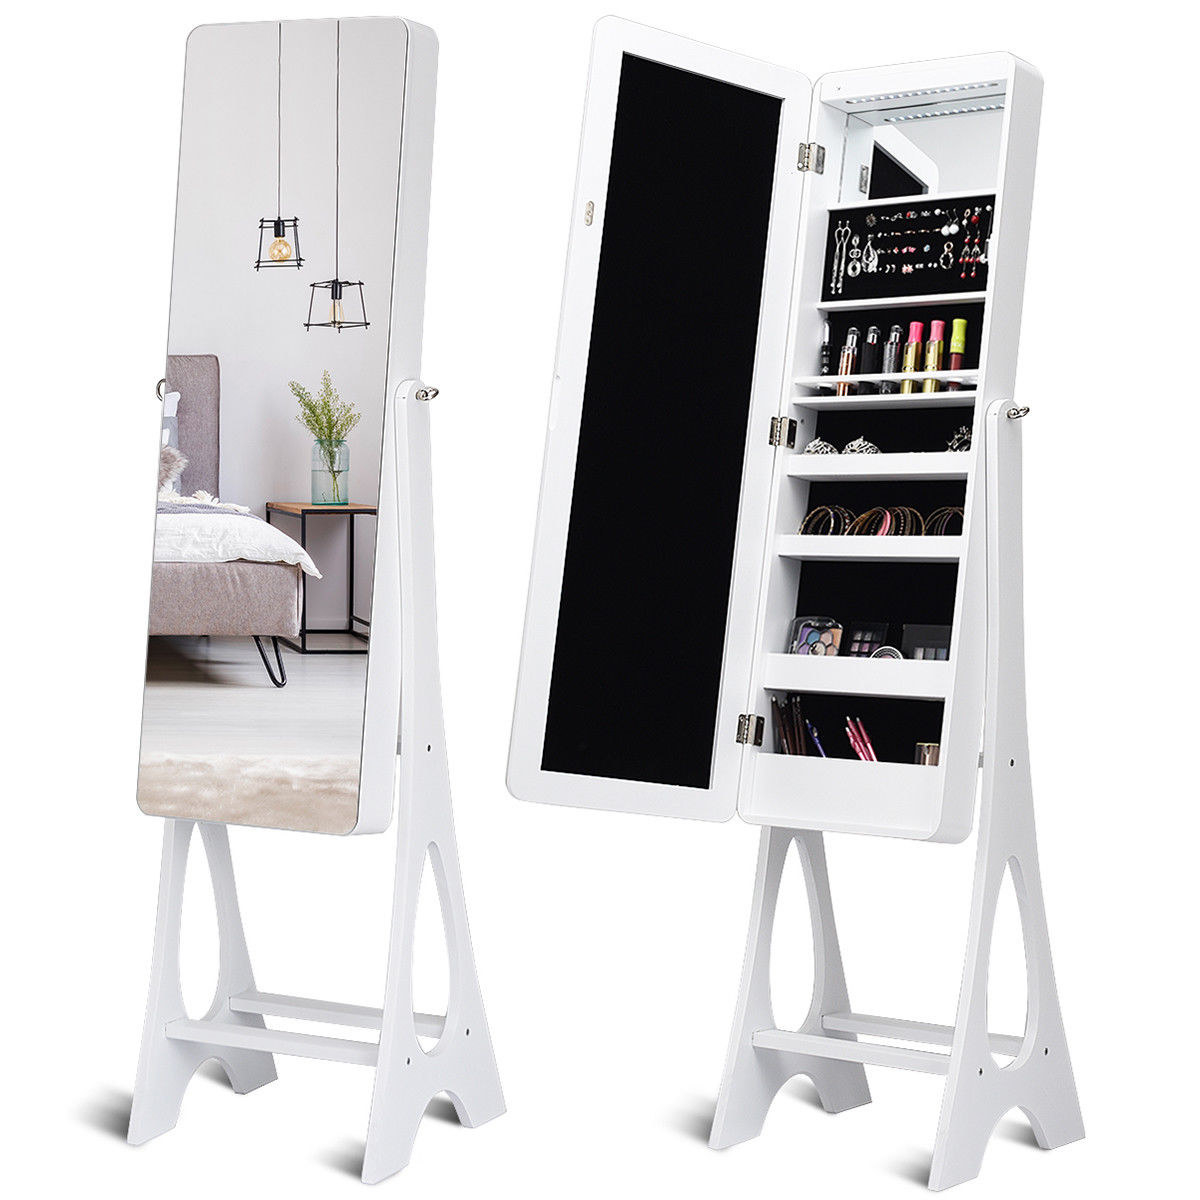 The tall white standing mirror with interior jewelry organizer